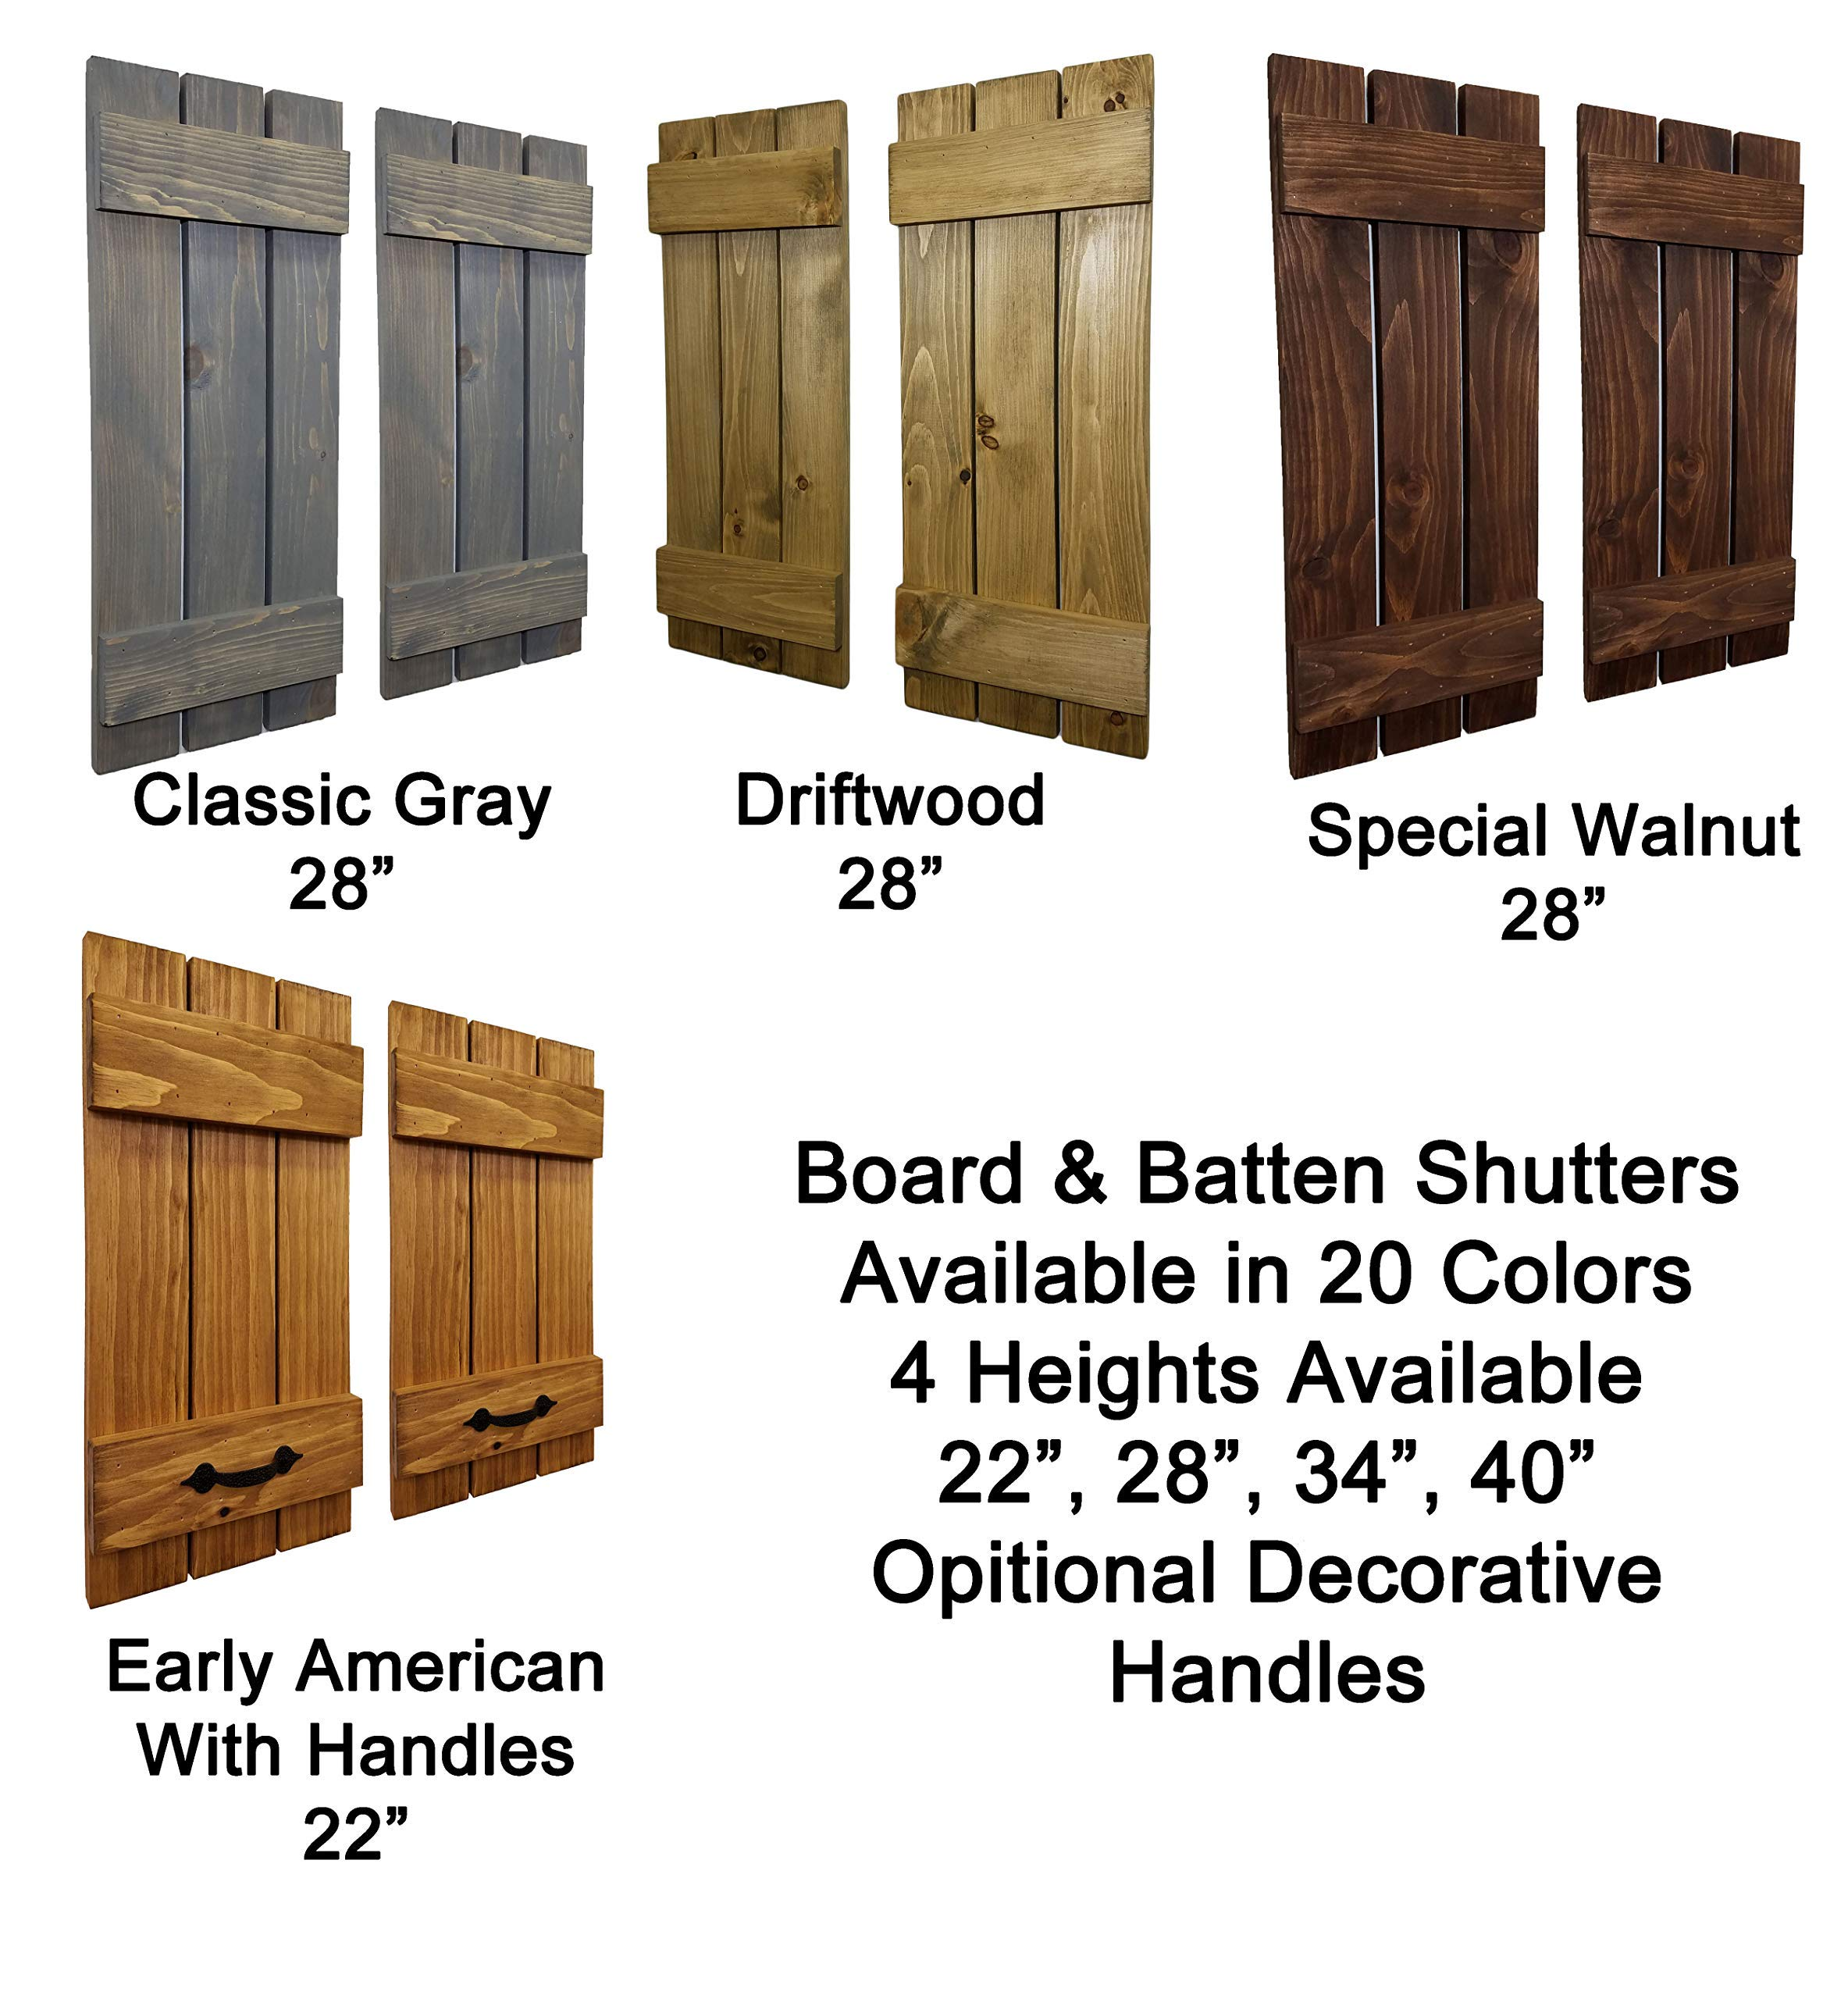 Countryside Rustic Pair of Decorative Board and Batten Shutters Available in 20 Colors - Choose from 4 sizes 40'', 34'', 28'', 22'' Inches - Rustic Wall Home Decor - Farmhouse - Shabby Chic by Renewed Decor & Storage